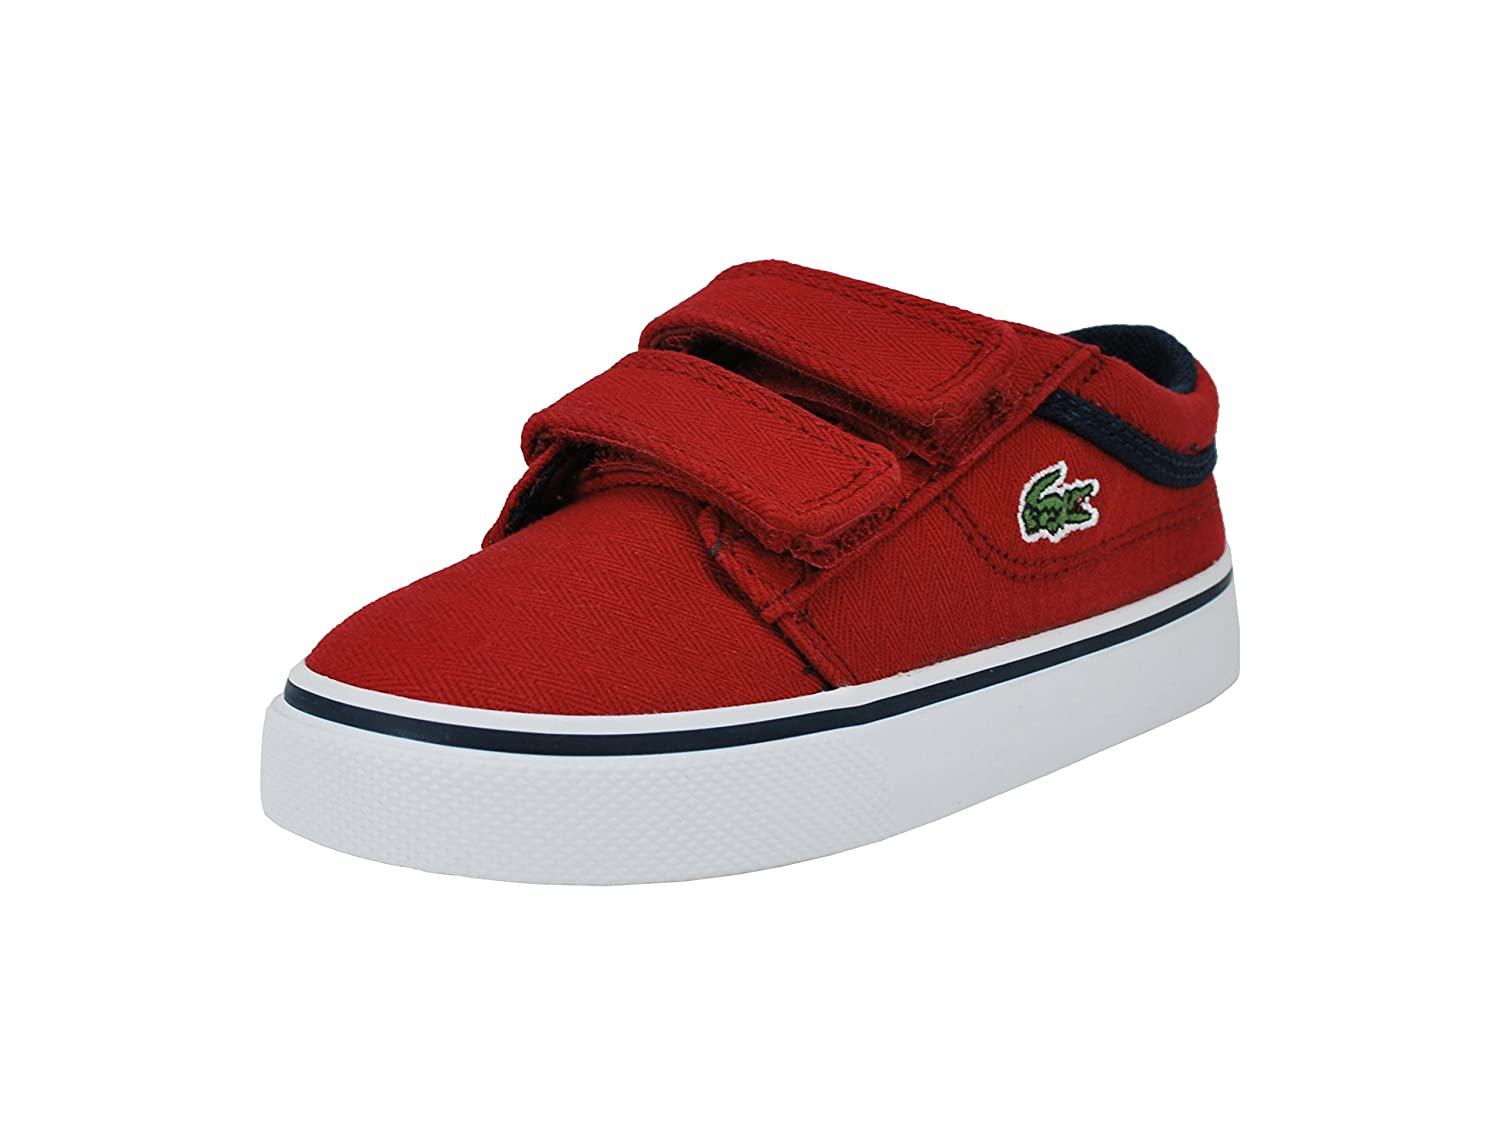 Amazon.com: LACOSTE Vaultstar 3161 Red/Navy Canvas Sneakers 7-32SPI0111112 Infant/Toddler Shoes (6.0 M US Toddler): Shoes